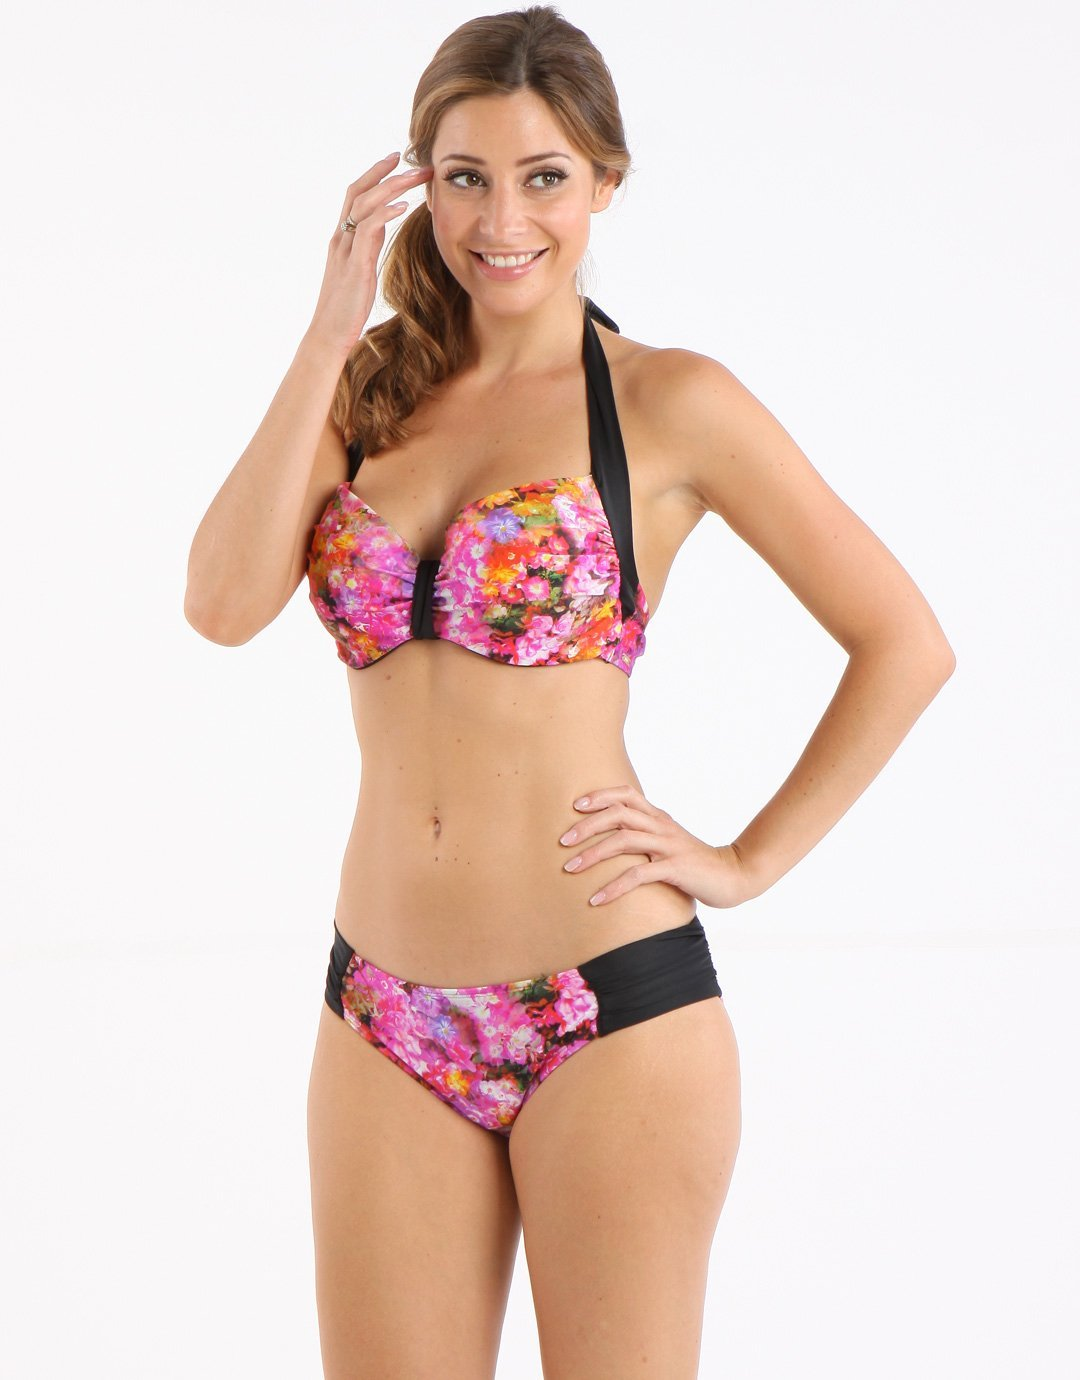 Panache Savannah Gathered Pant - Floral